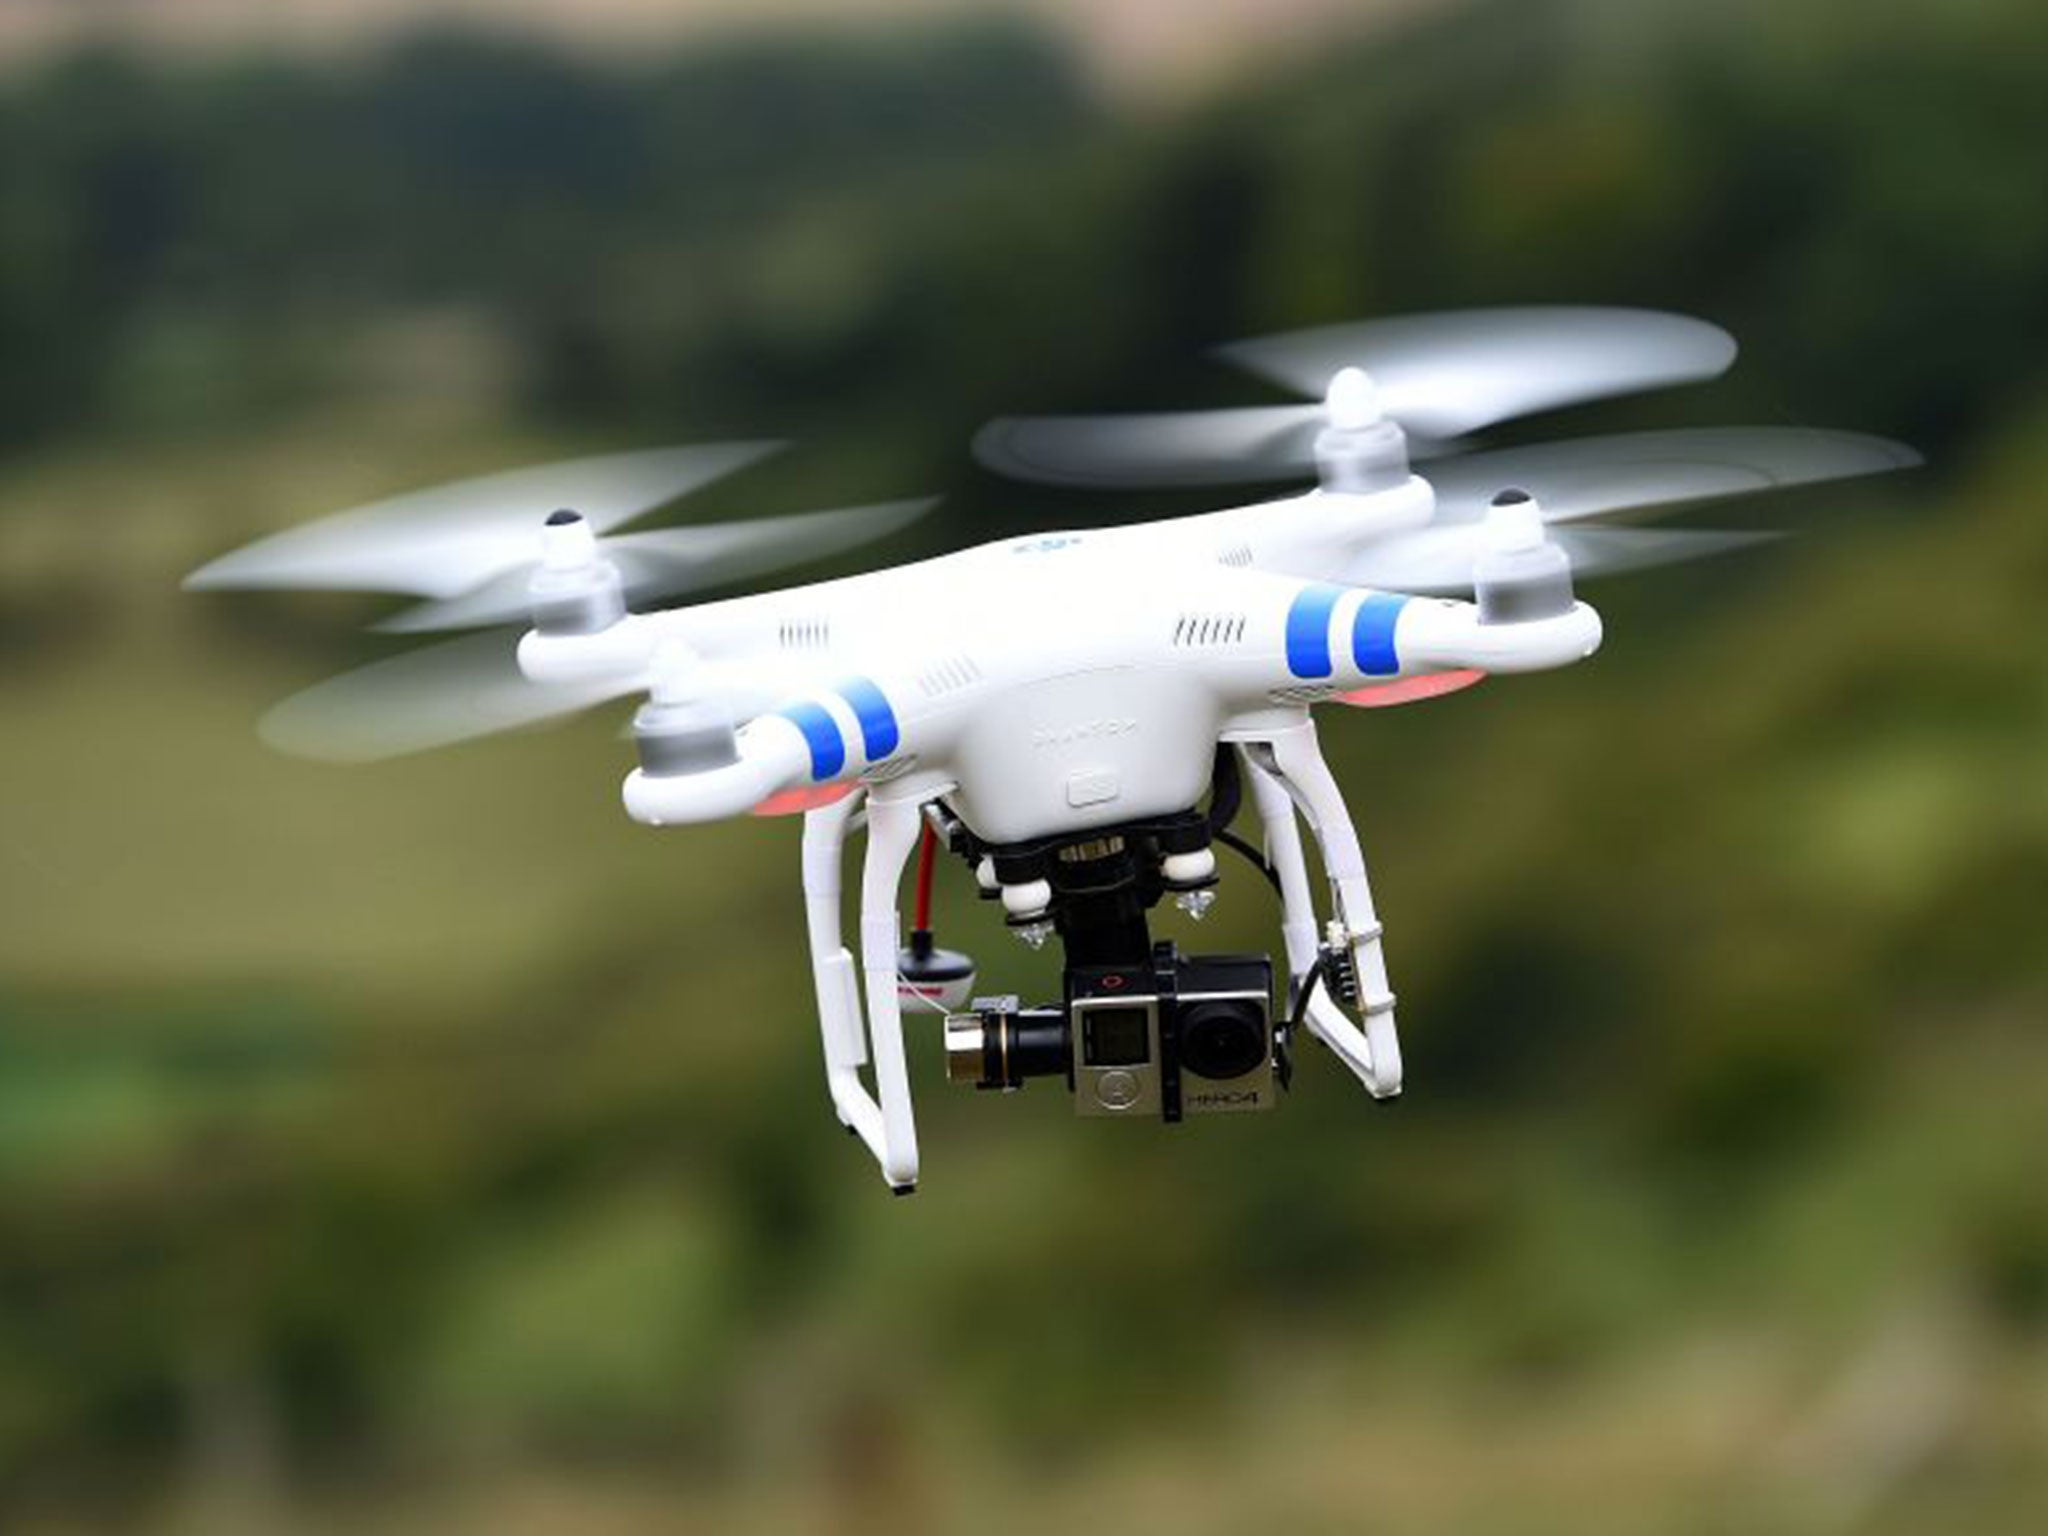 Drones will take $127bn worth of human work by 2020, PwC says